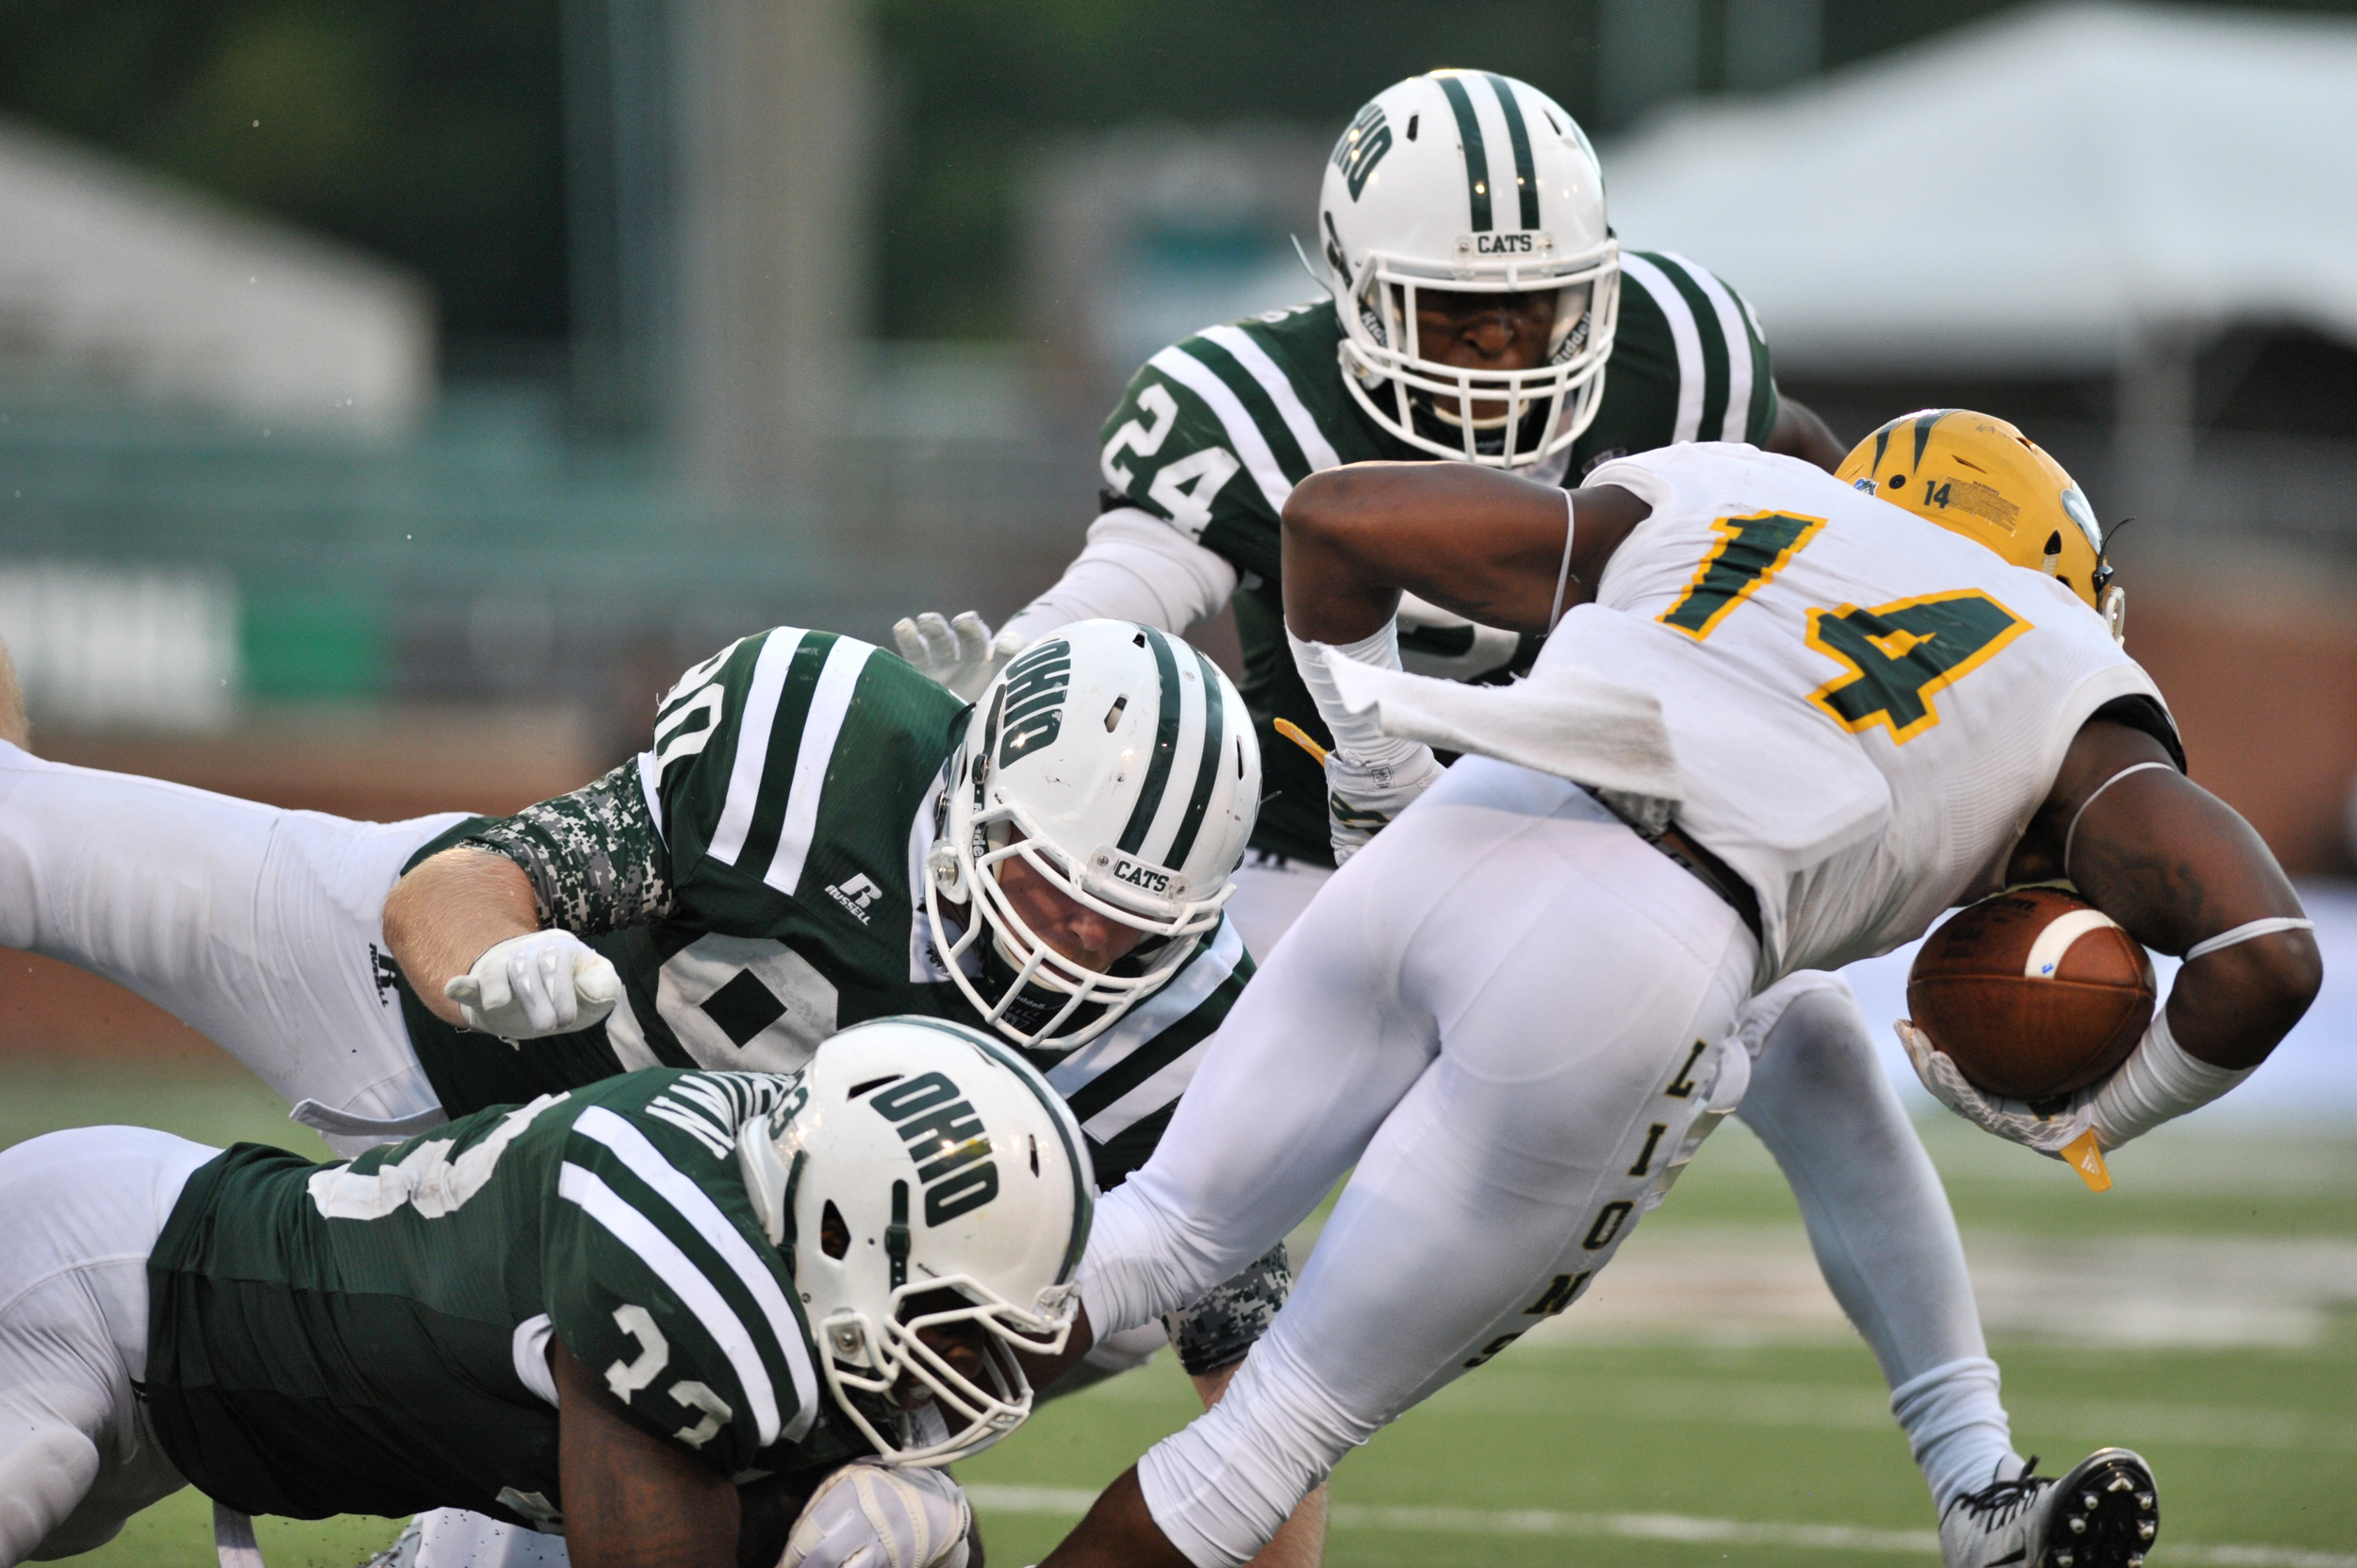 Ohio University football players Blair Brown (#33), Trent Smart (#90), and Toran Davis (#24) tackle Southeastern Louisiana wide receiver Jeff Smiley. The Bobcats won the game with a score of 35-14 on September 19, 2015, at Peden Stadium in Athens, Ohio.